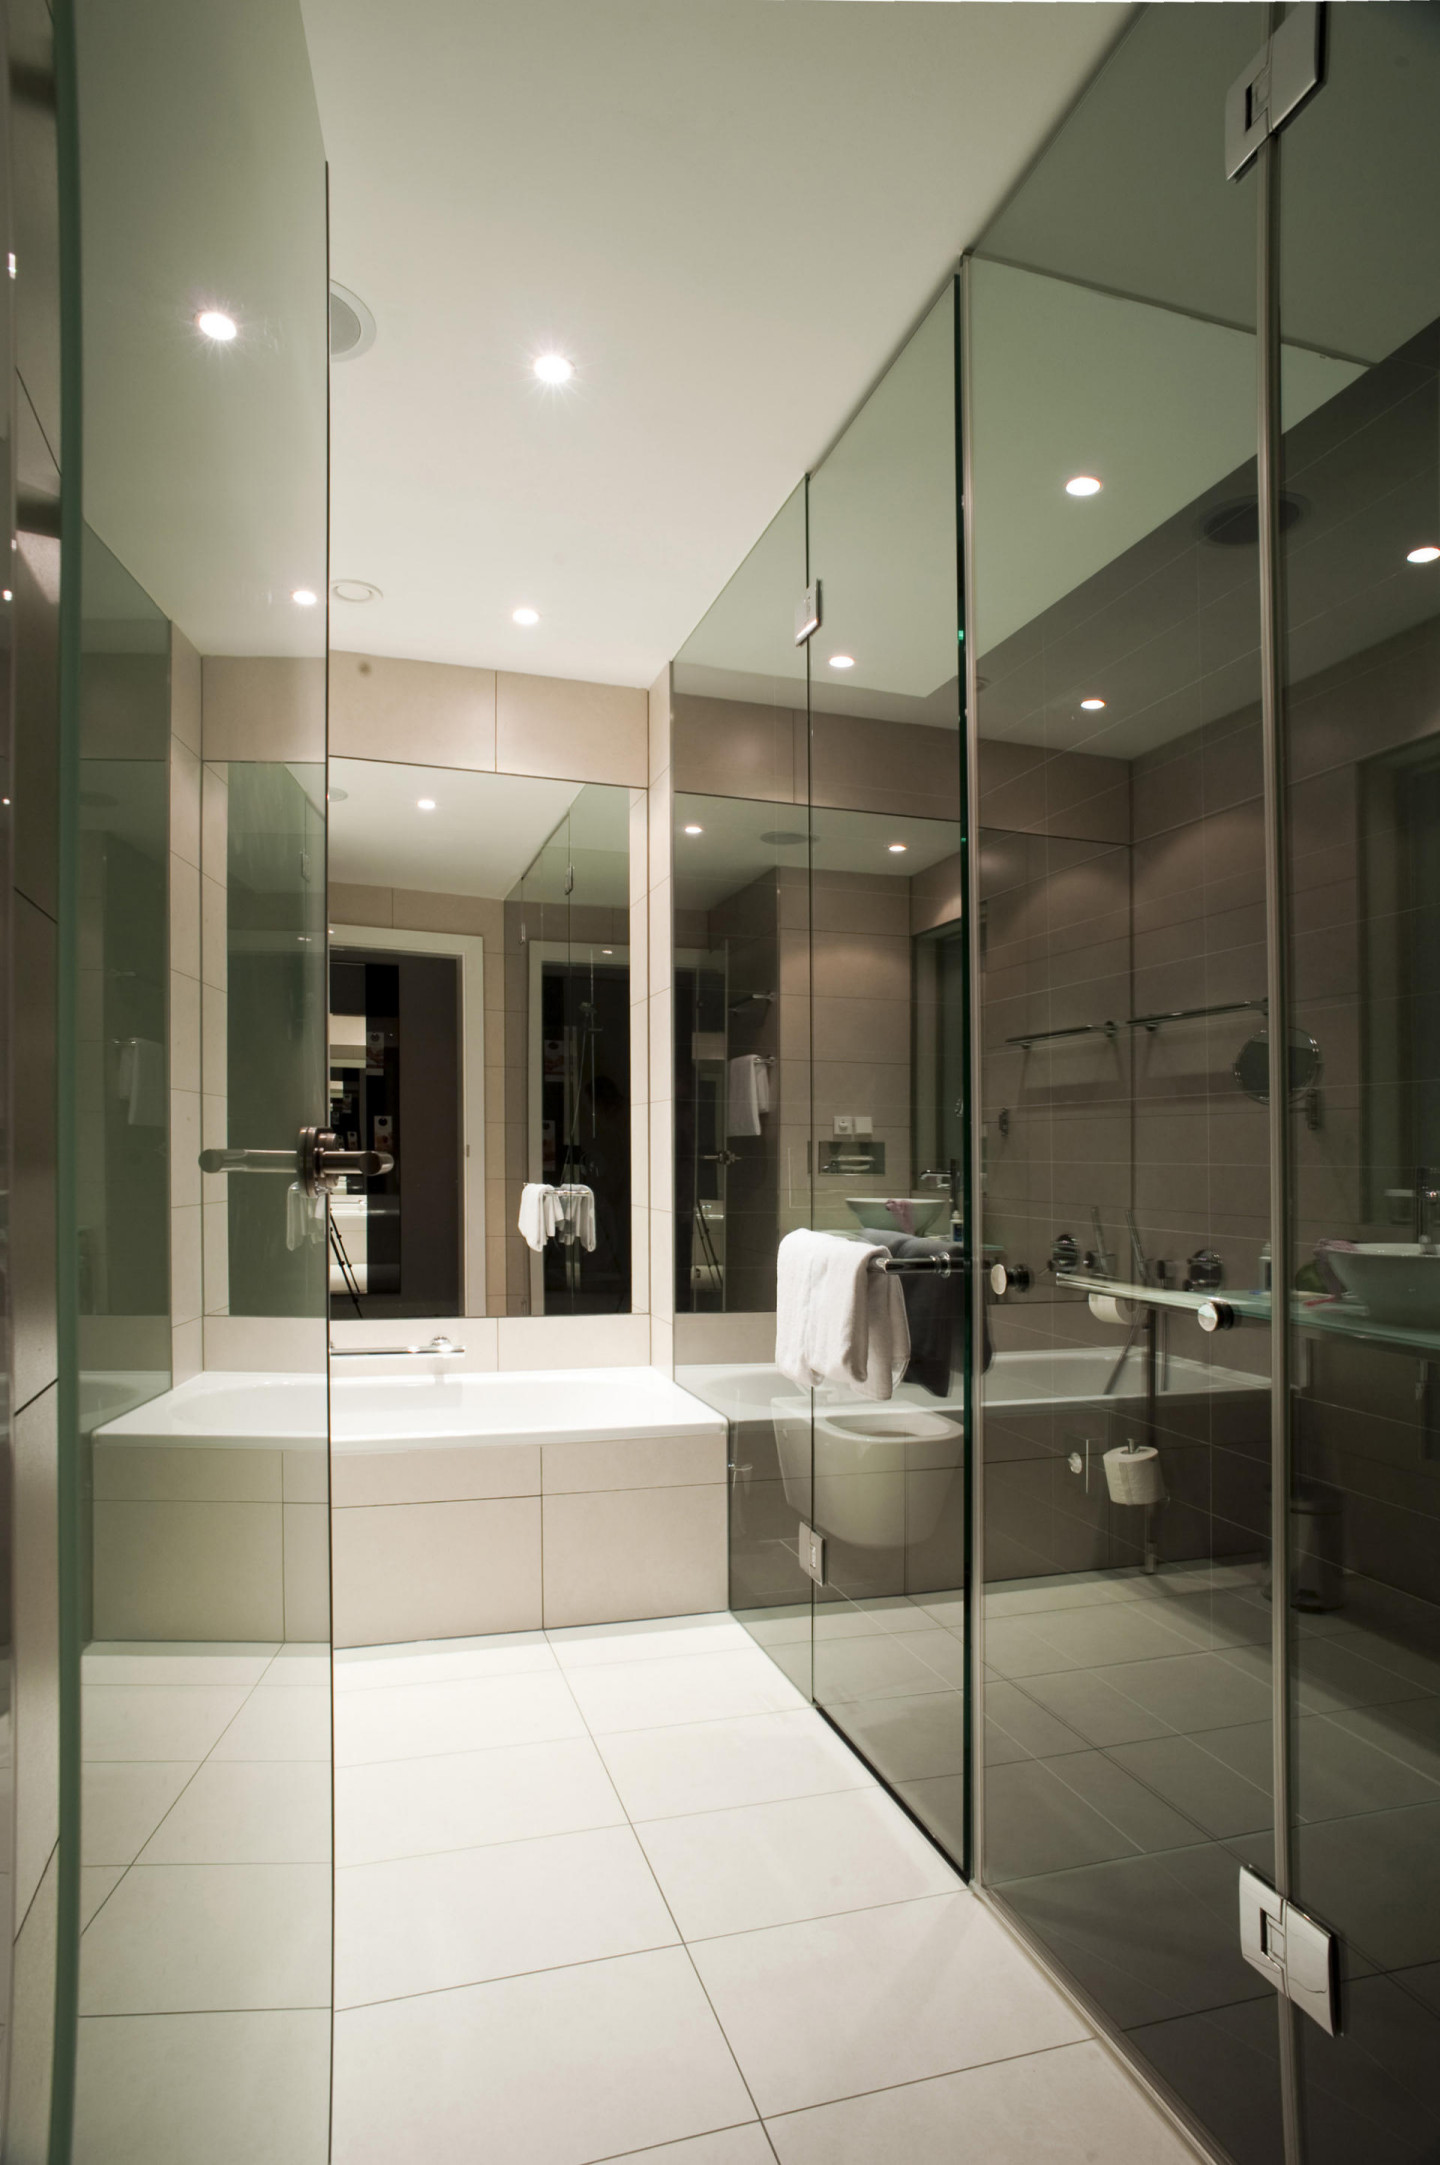 glass interior of a stylish modern hotel bathroom